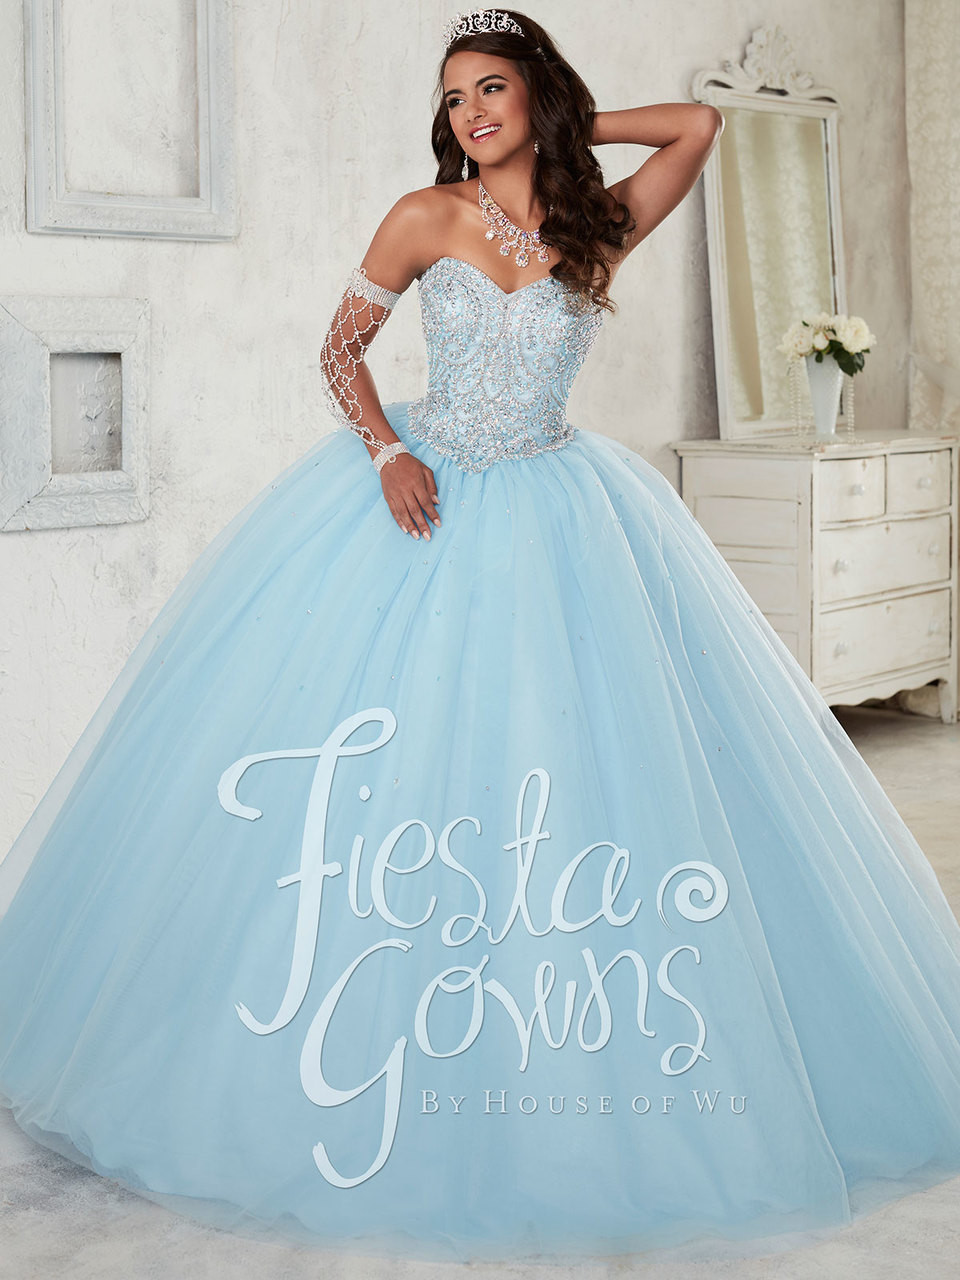 6aa095ad643 Light blue quinceanera dress with silver stones and plain tulle skirt by fiesta  gowns 56298